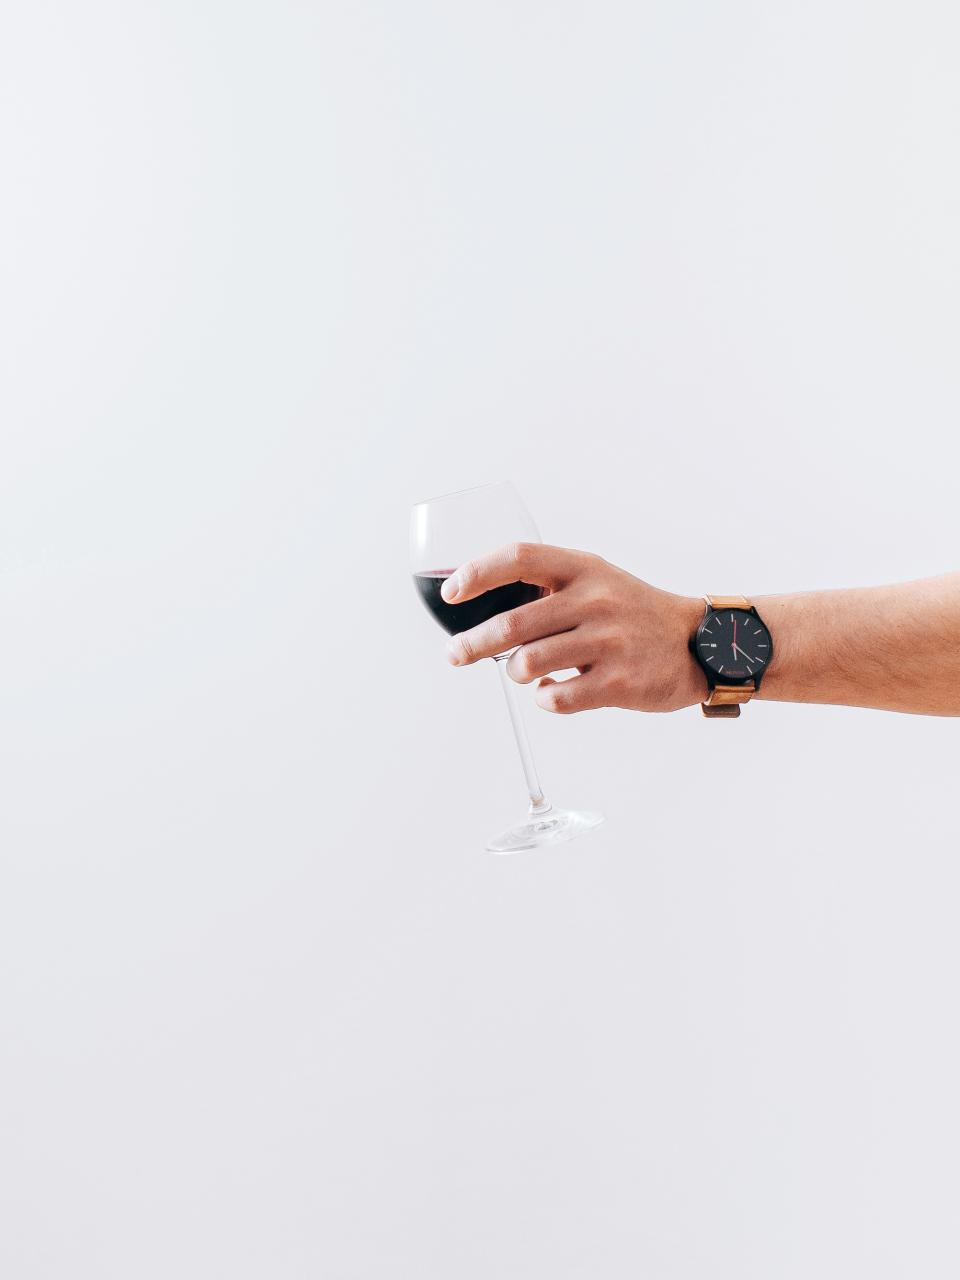 wine glass alcohol drink hands watch white